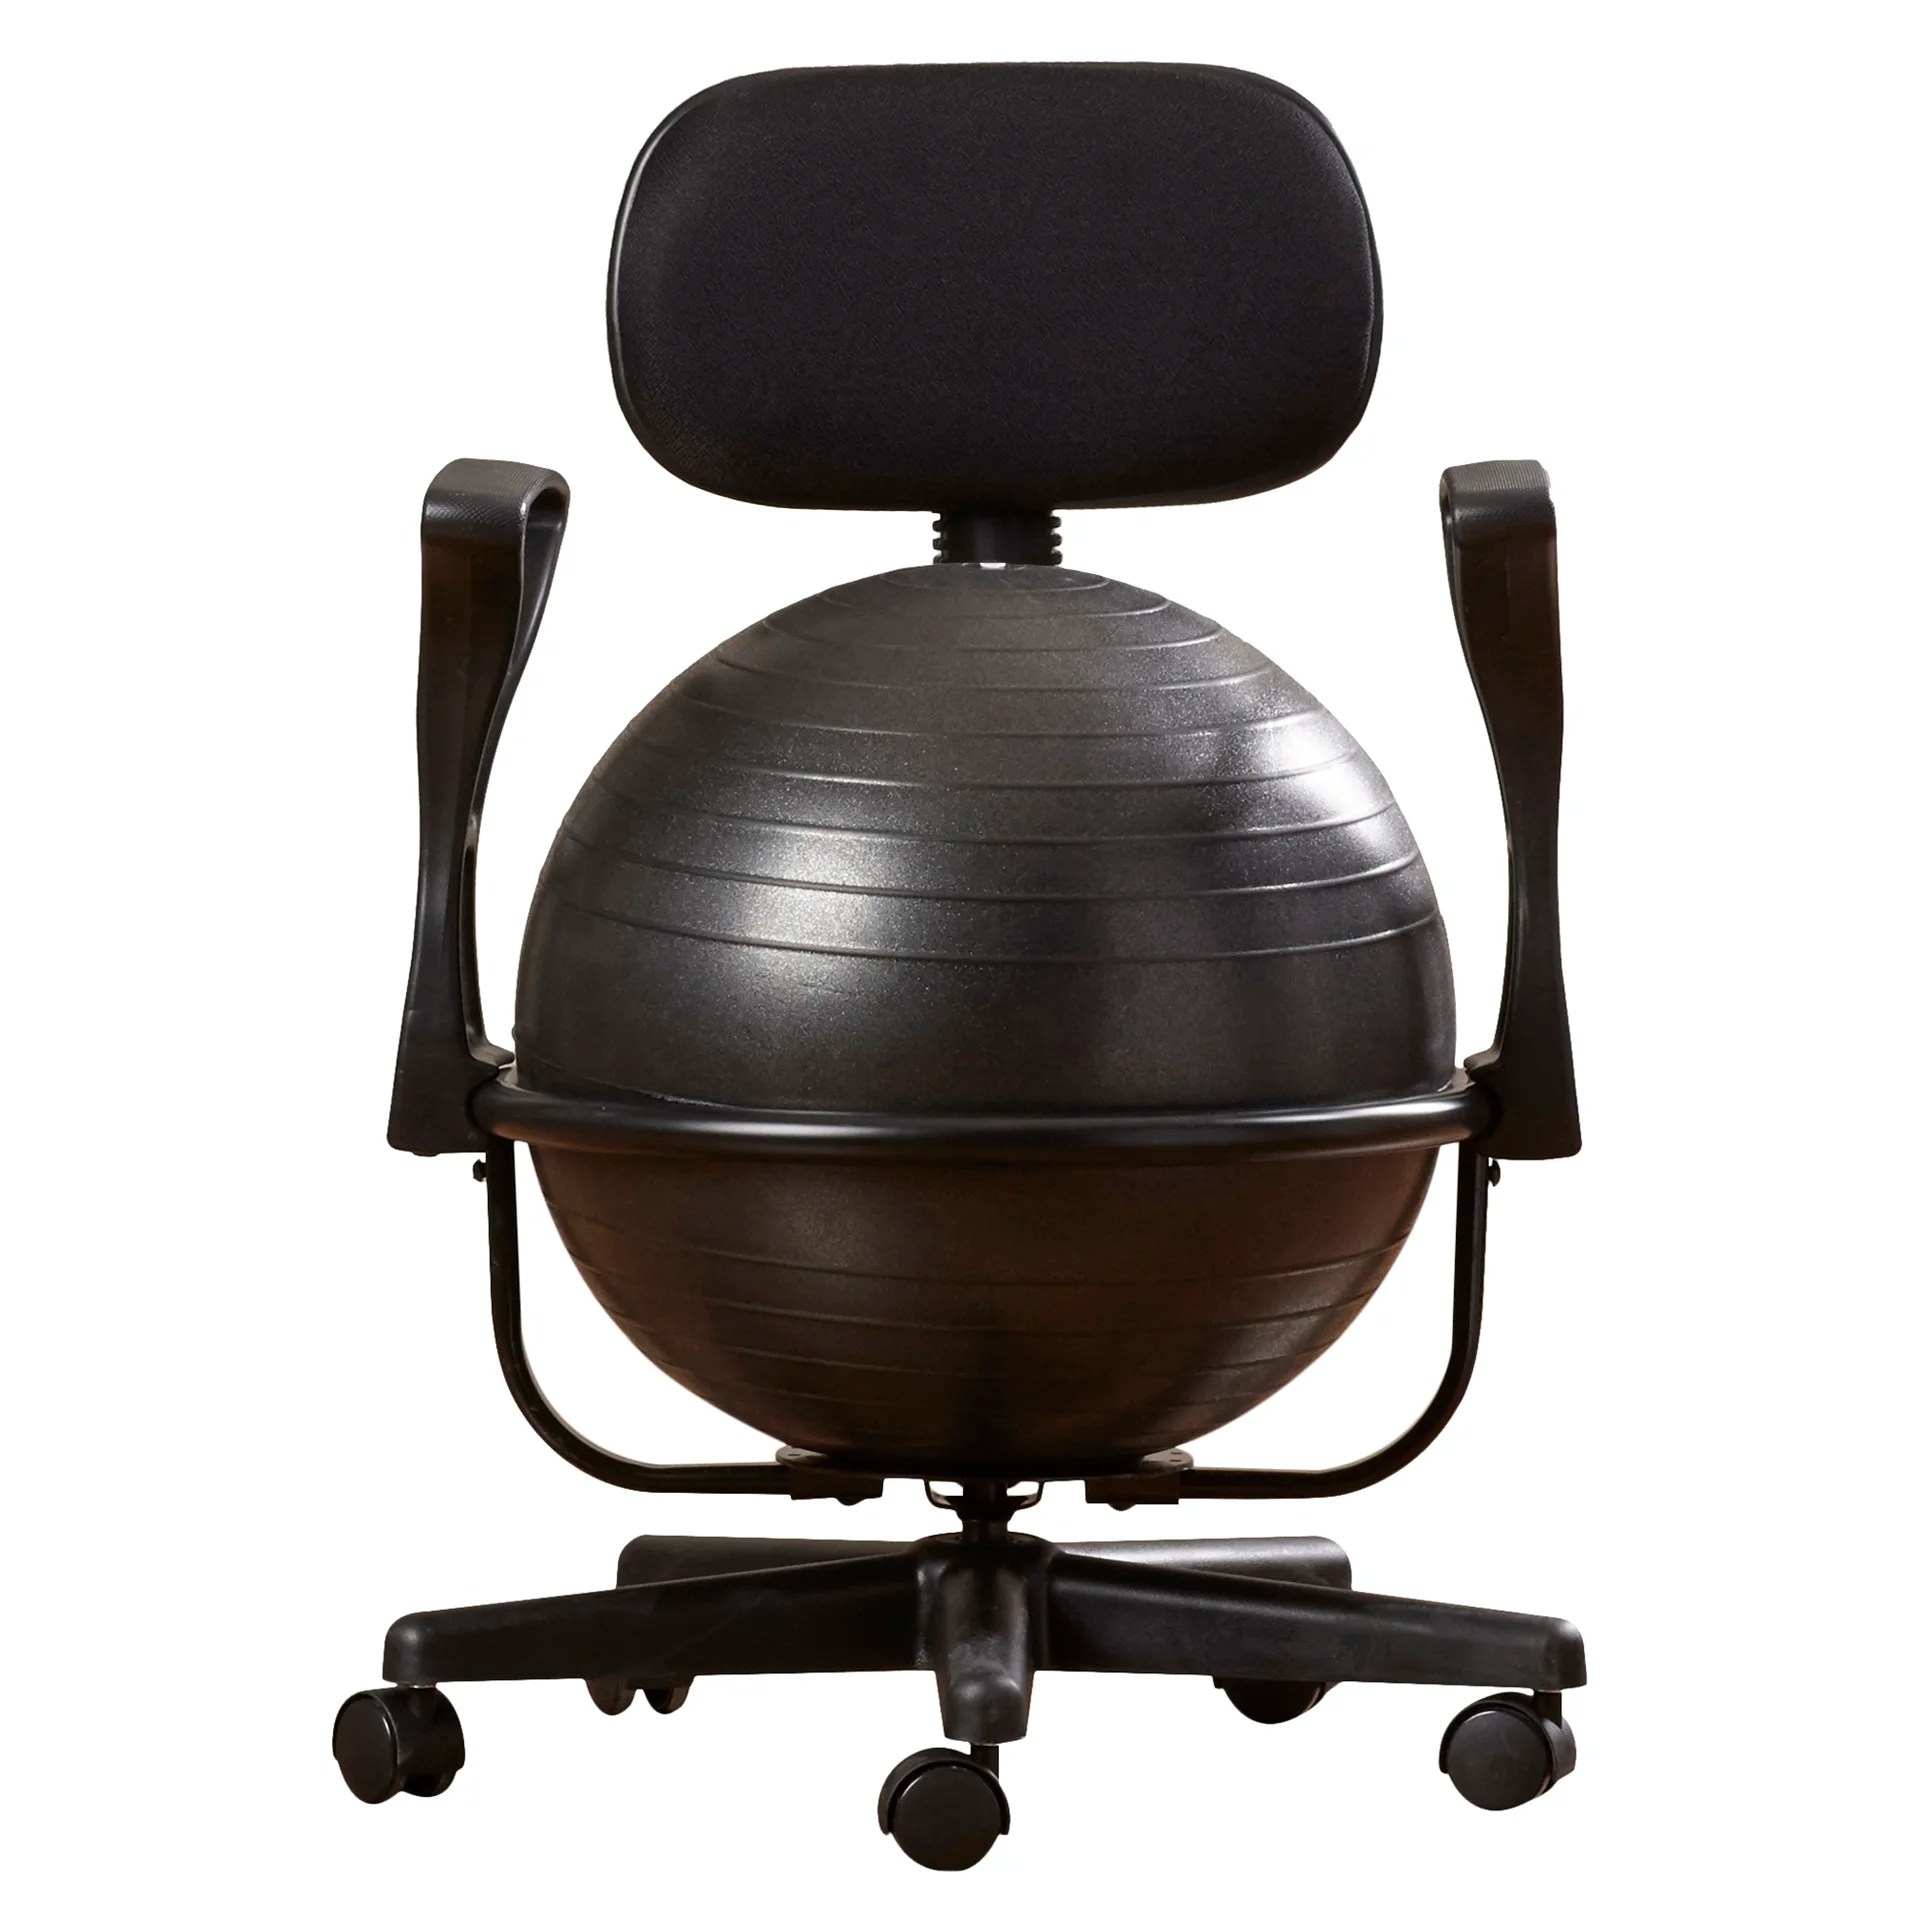 yoga ball chair exercises how to make back covers for weddings symple stuff exercise and reviews wayfair supply